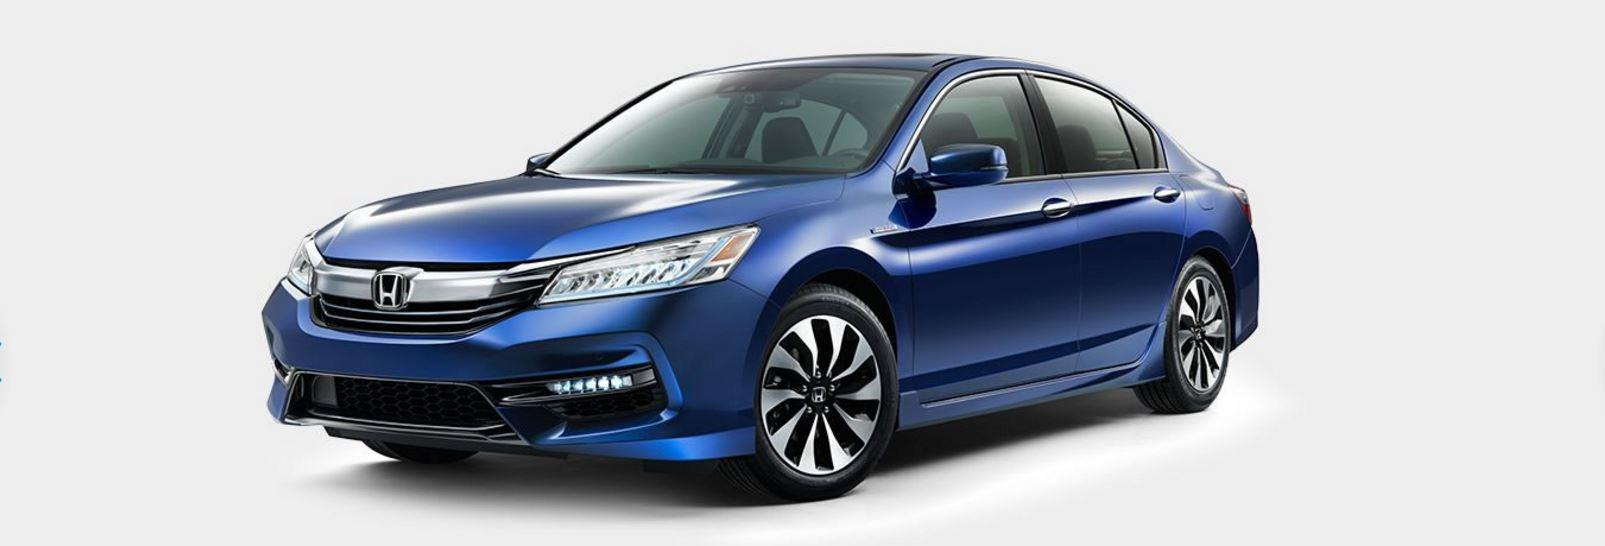 2017 Honda Accord Blue